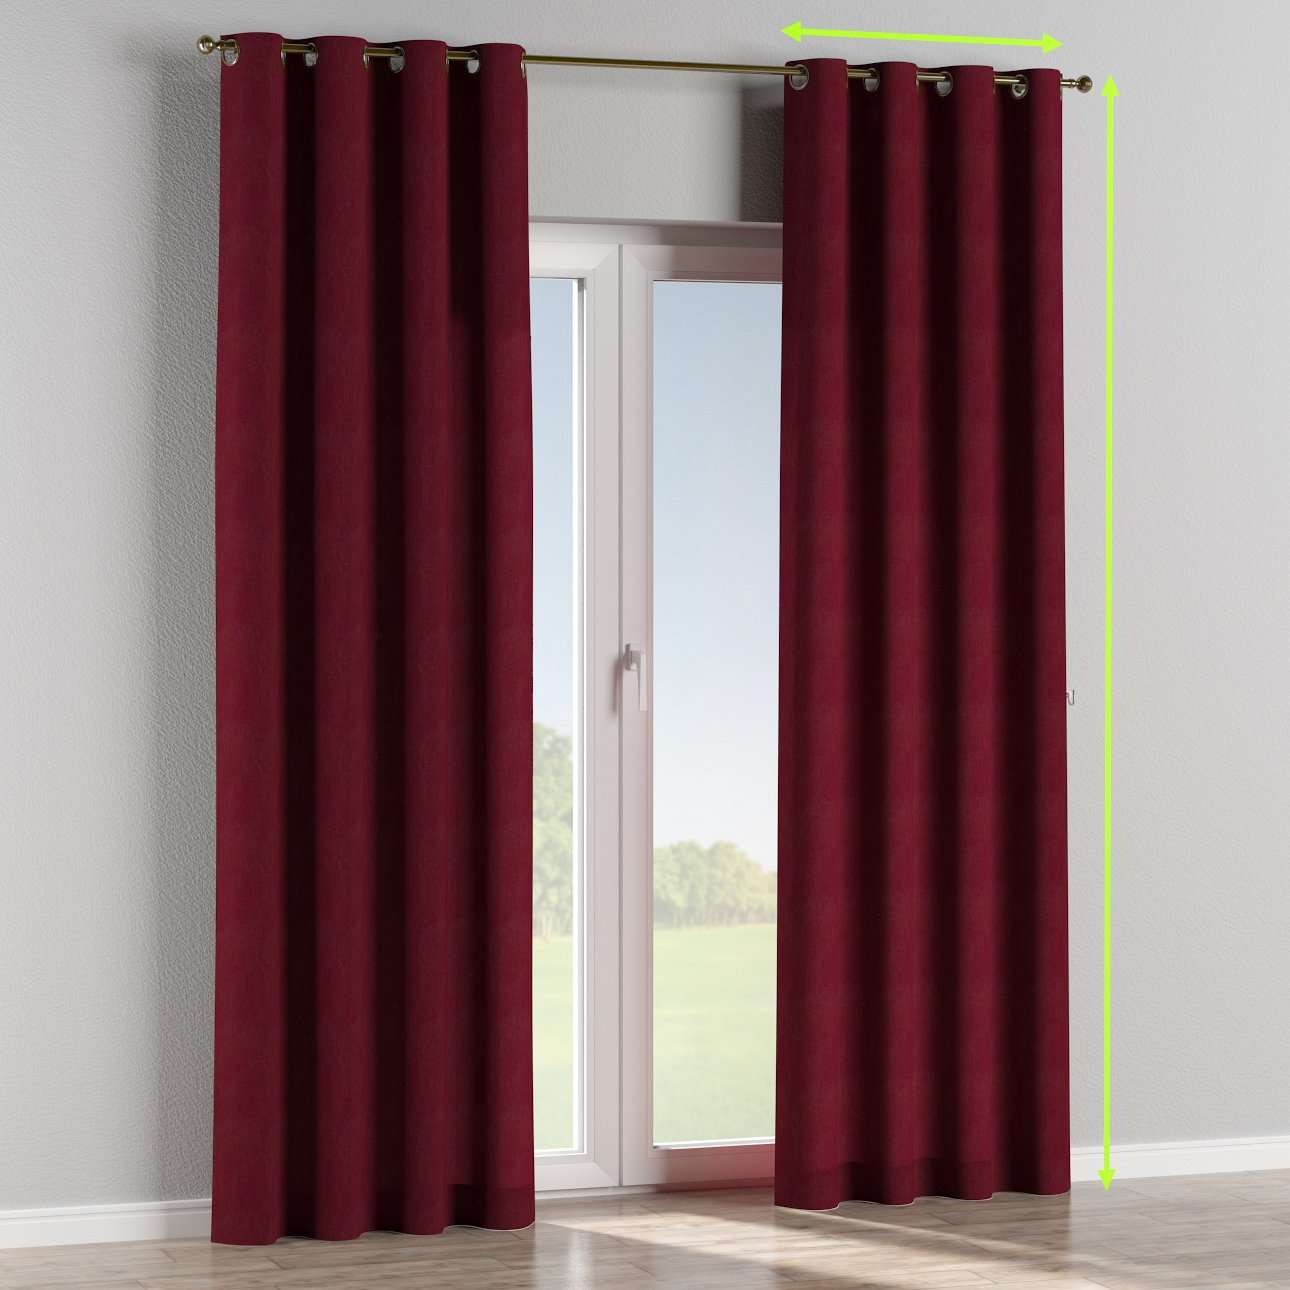 Eyelet curtains in collection Chenille, fabric: 702-19